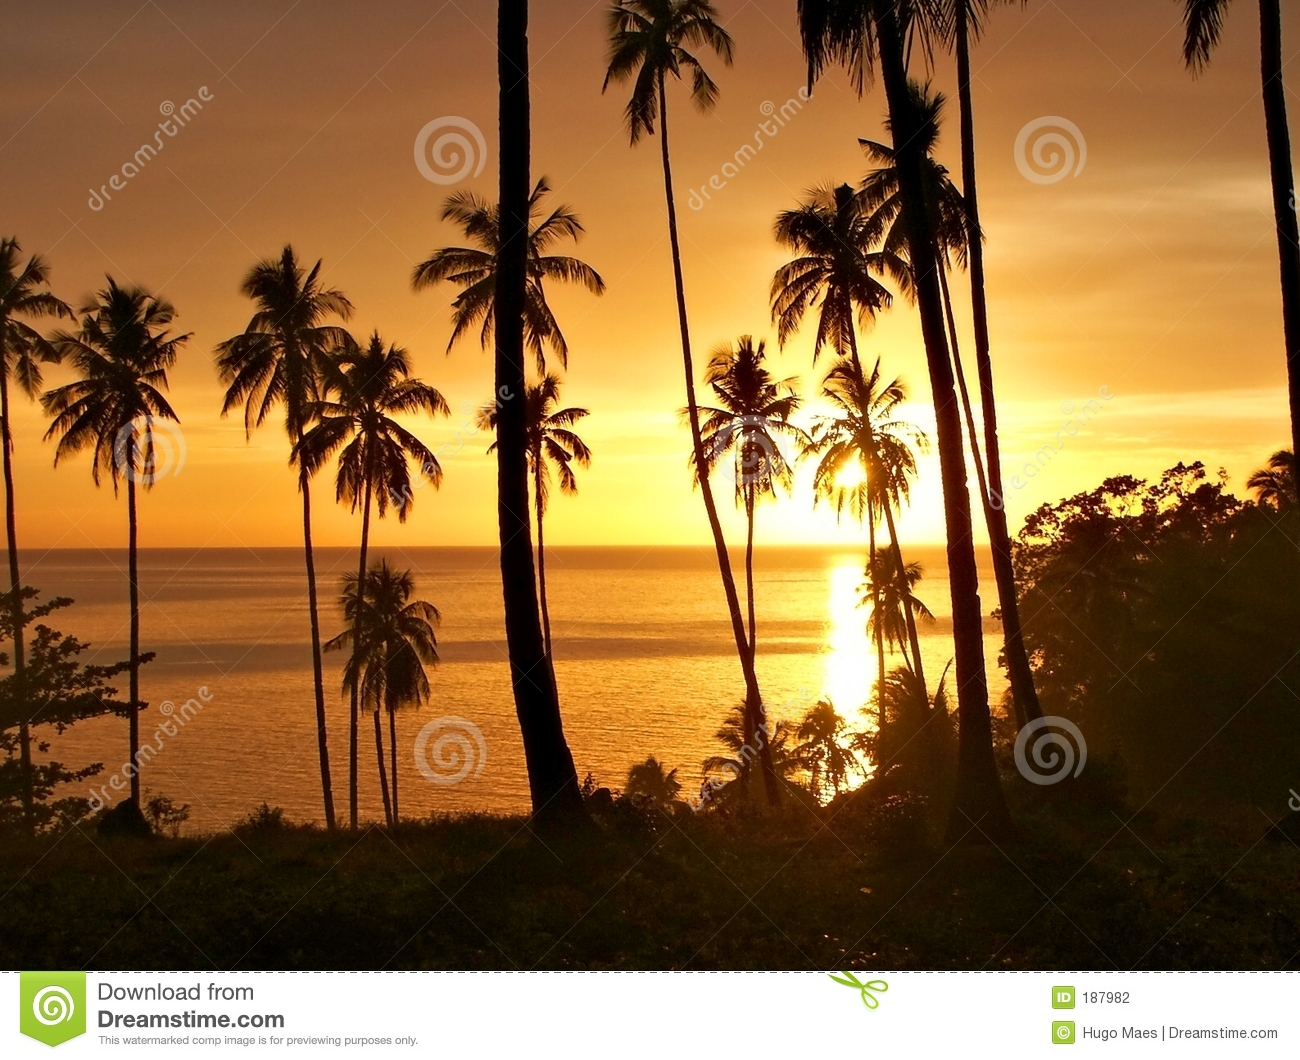 Tropical sunset with trees silhouette.